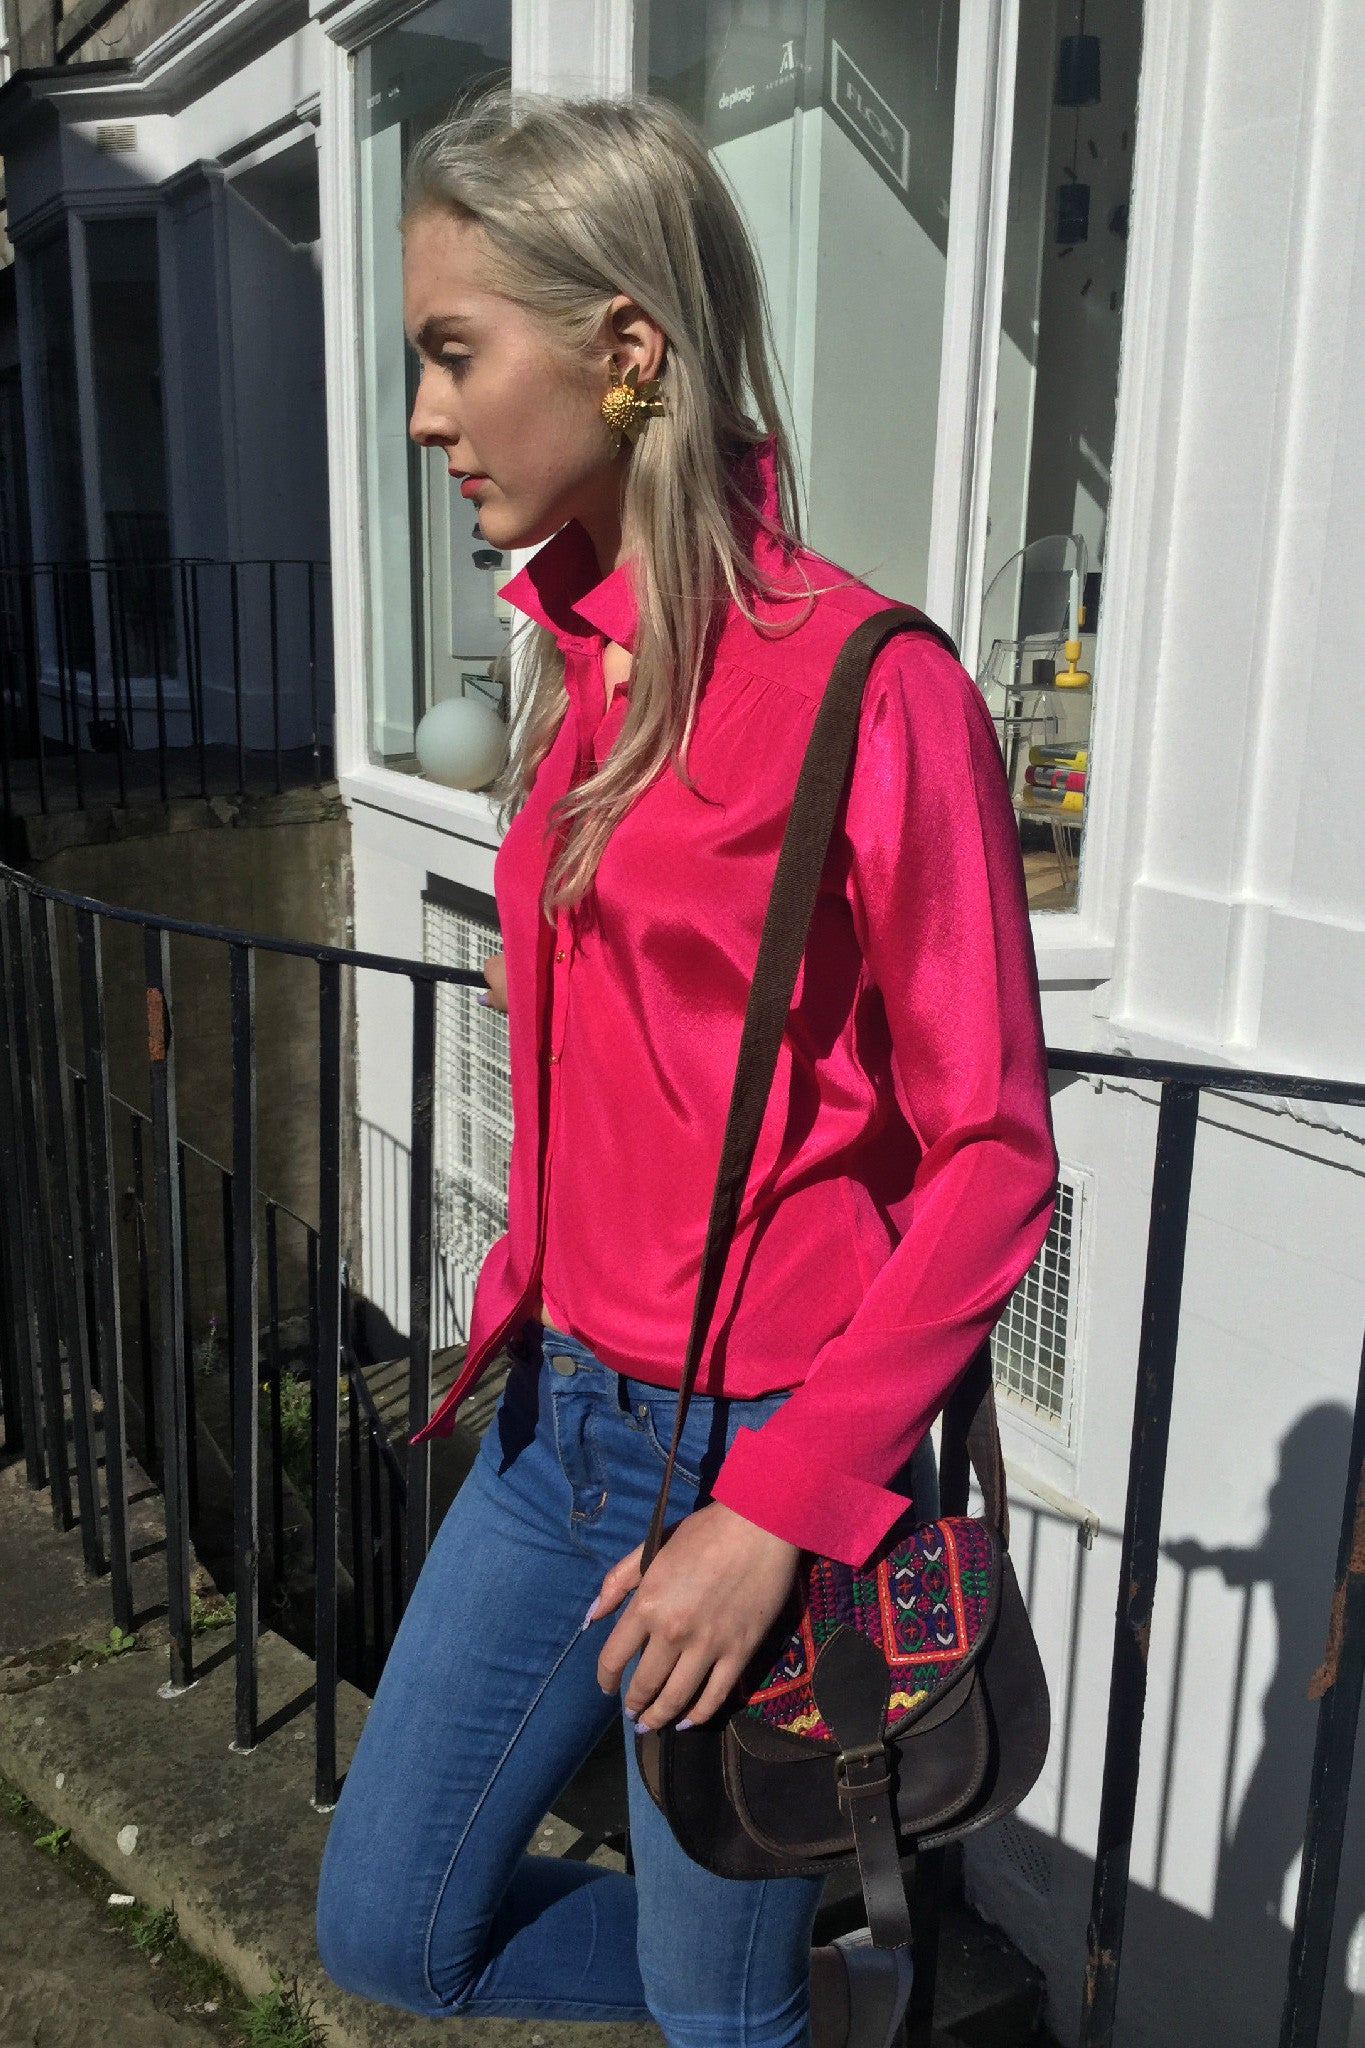 Sketch London Hot Pink Shirt Ethical Fashion Women